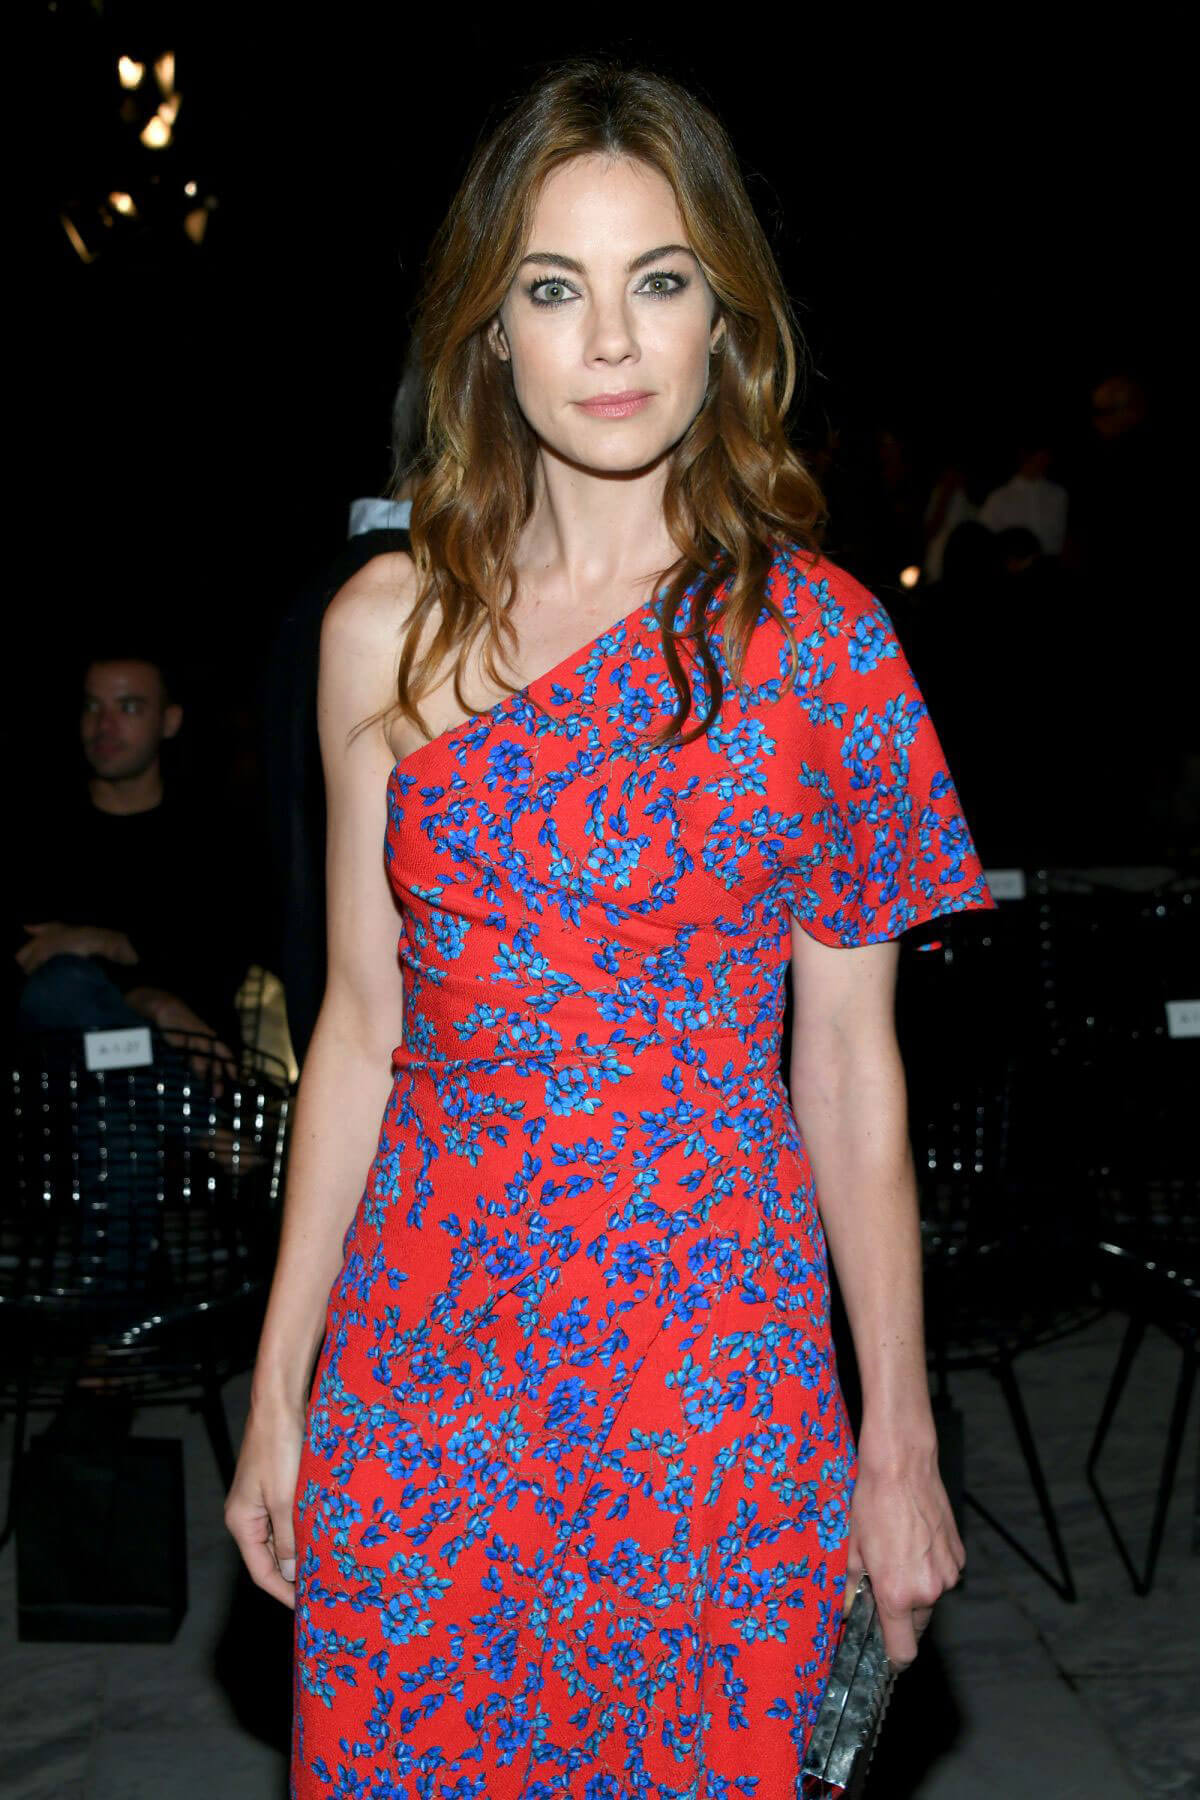 Michelle Monaghan Stills at Oscar De La Renta Fashion Show at NYFW